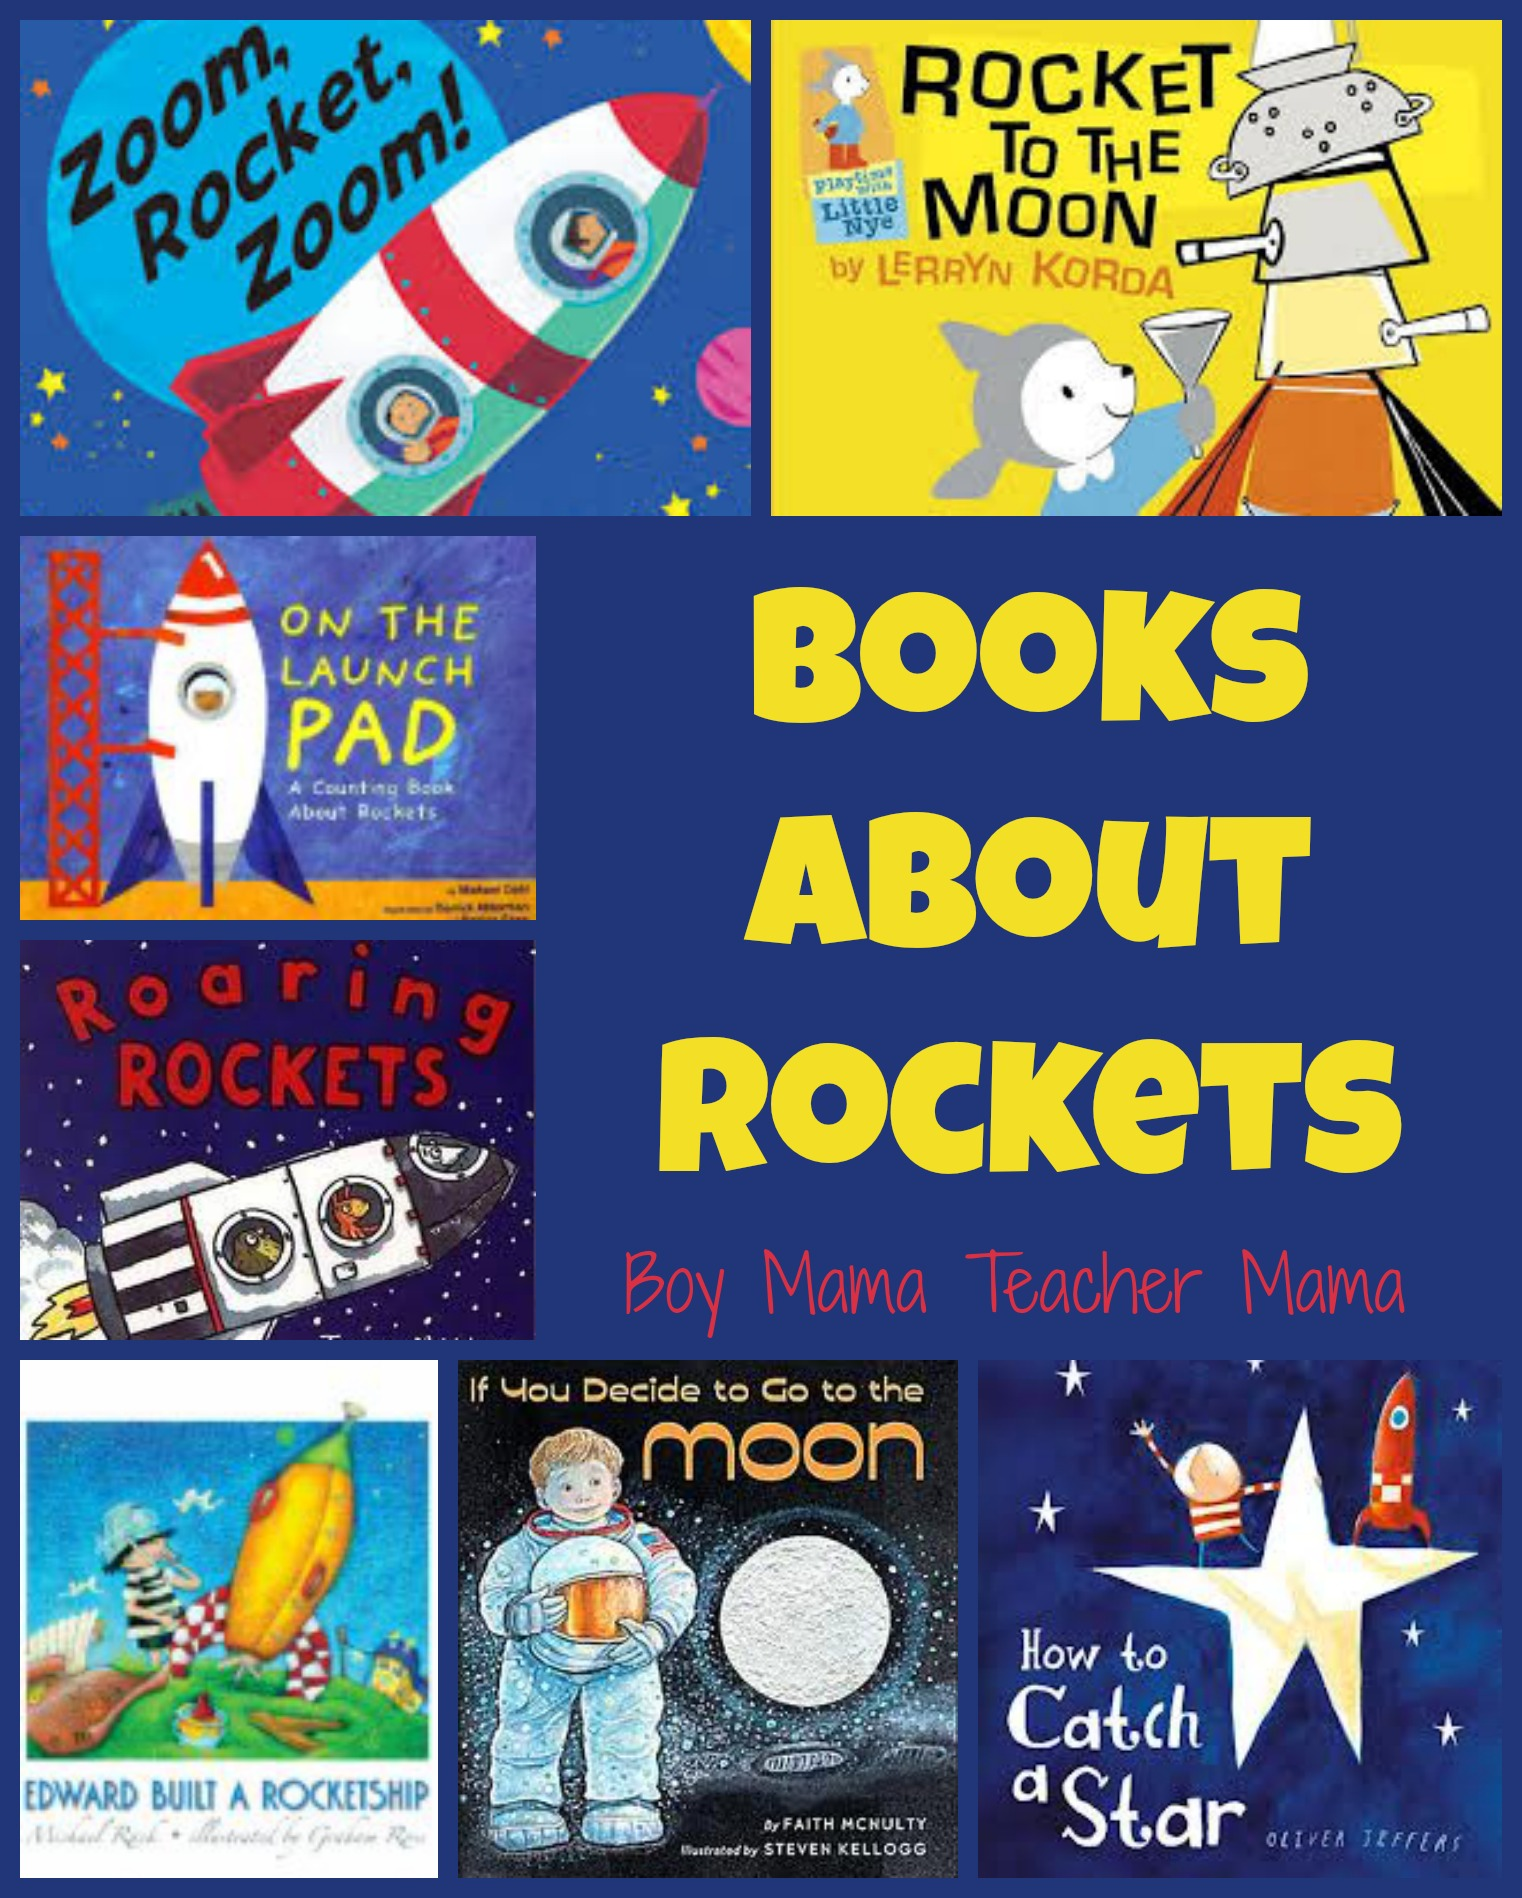 space rocket book - photo #3